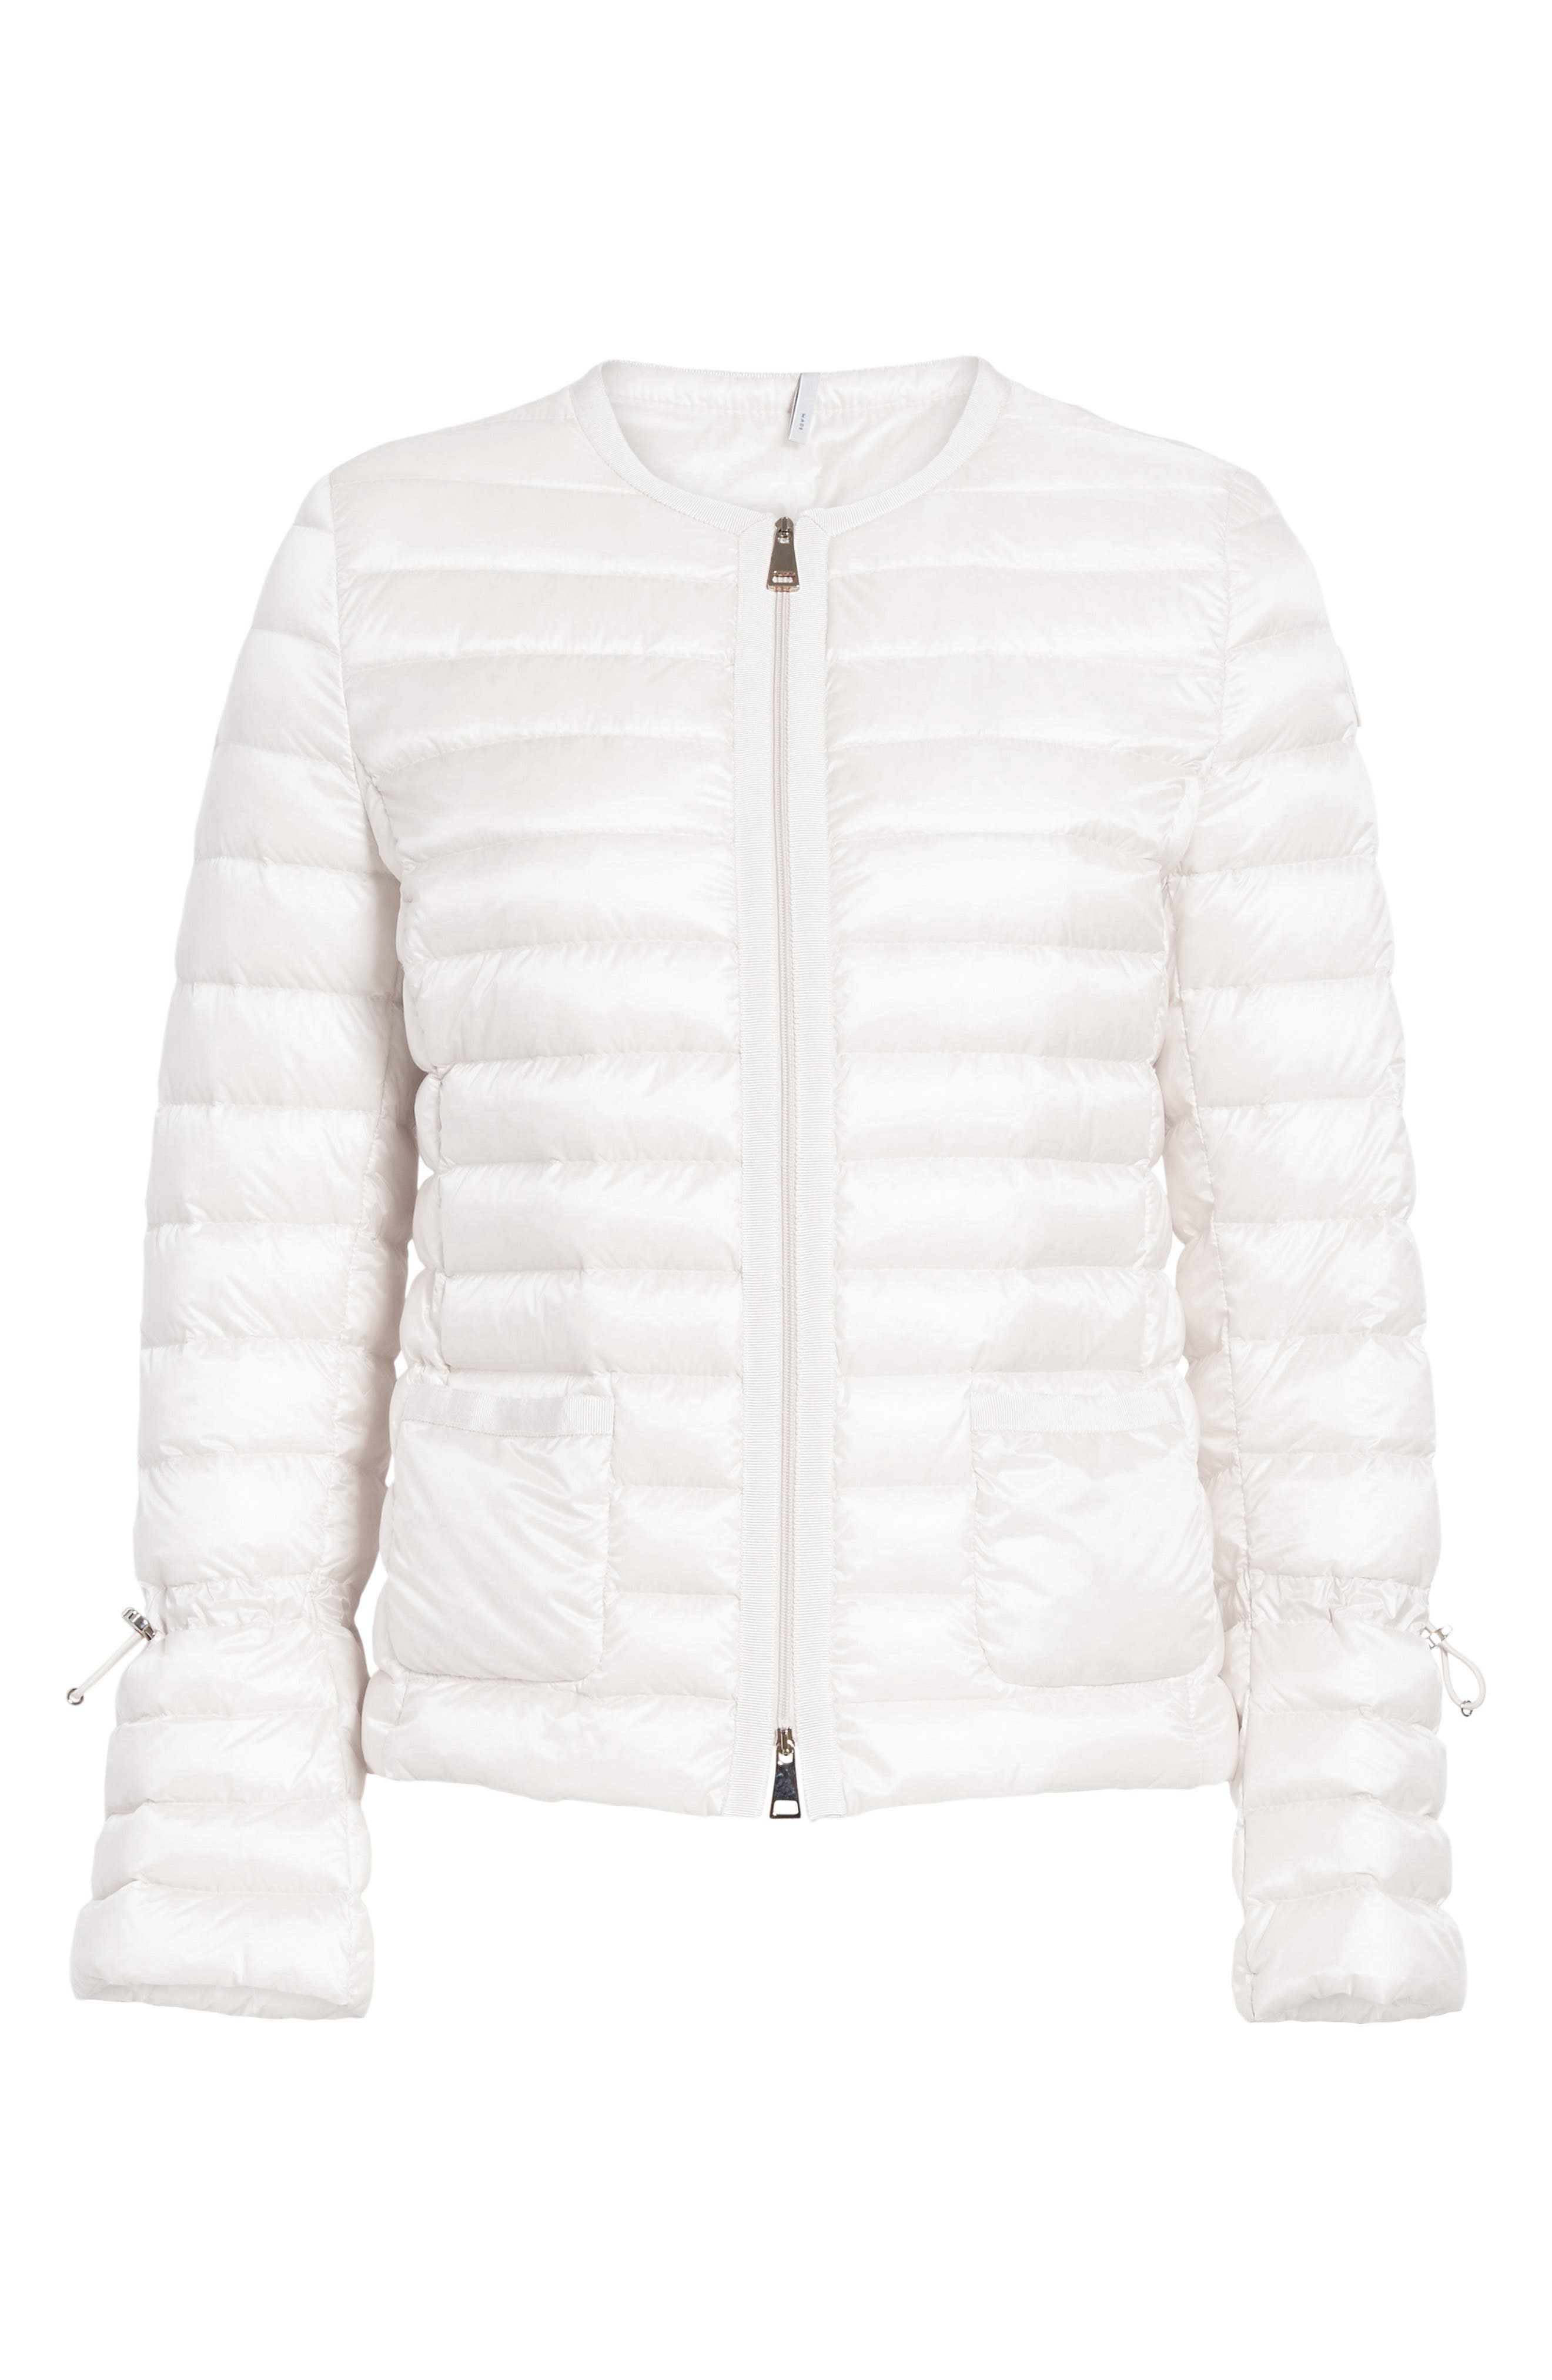 Almandin Quilted Puffer Jacket,                             Alternate thumbnail 5, color,                             101